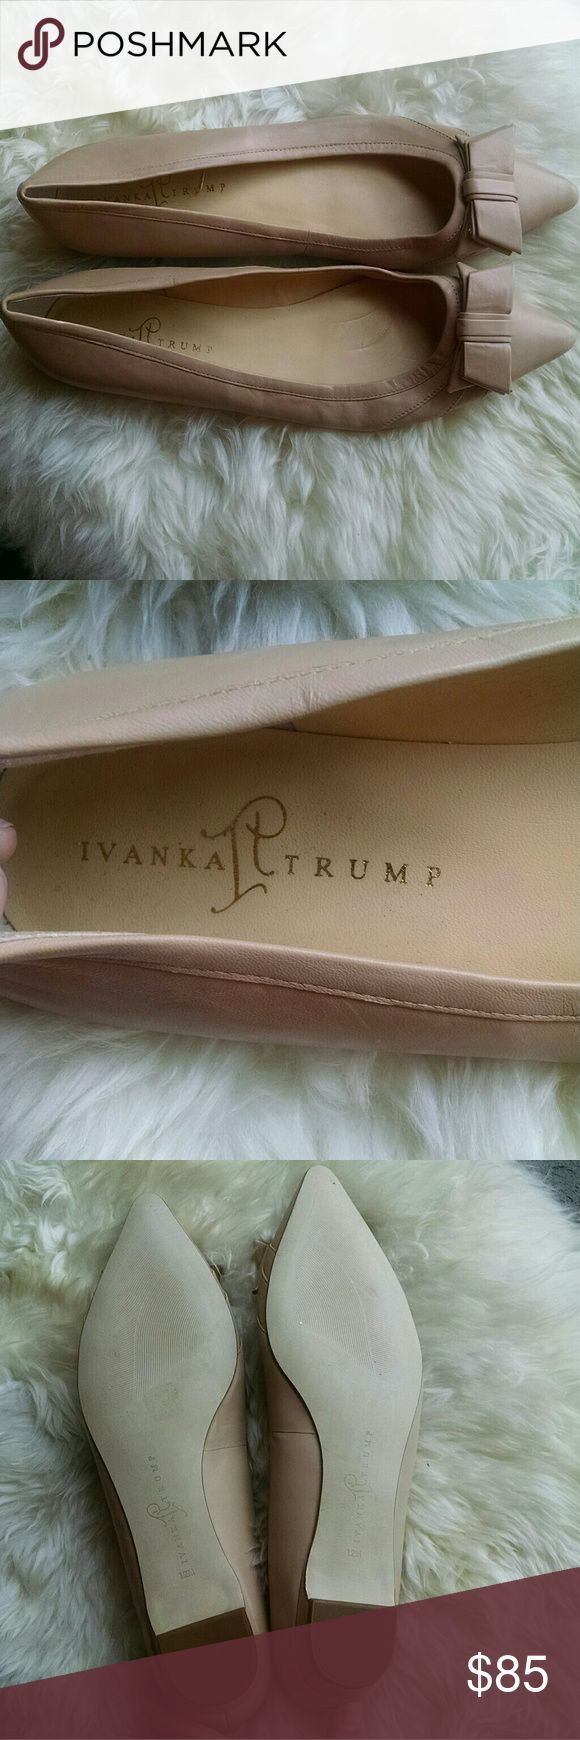 SALE! Ivanka Trump Abello Pointed Toe Flats w/ Bow These are adorable and would go with anything. Classic shoe.  Leather.   Nude. Ivanka Trump Shoes Flats & Loafers